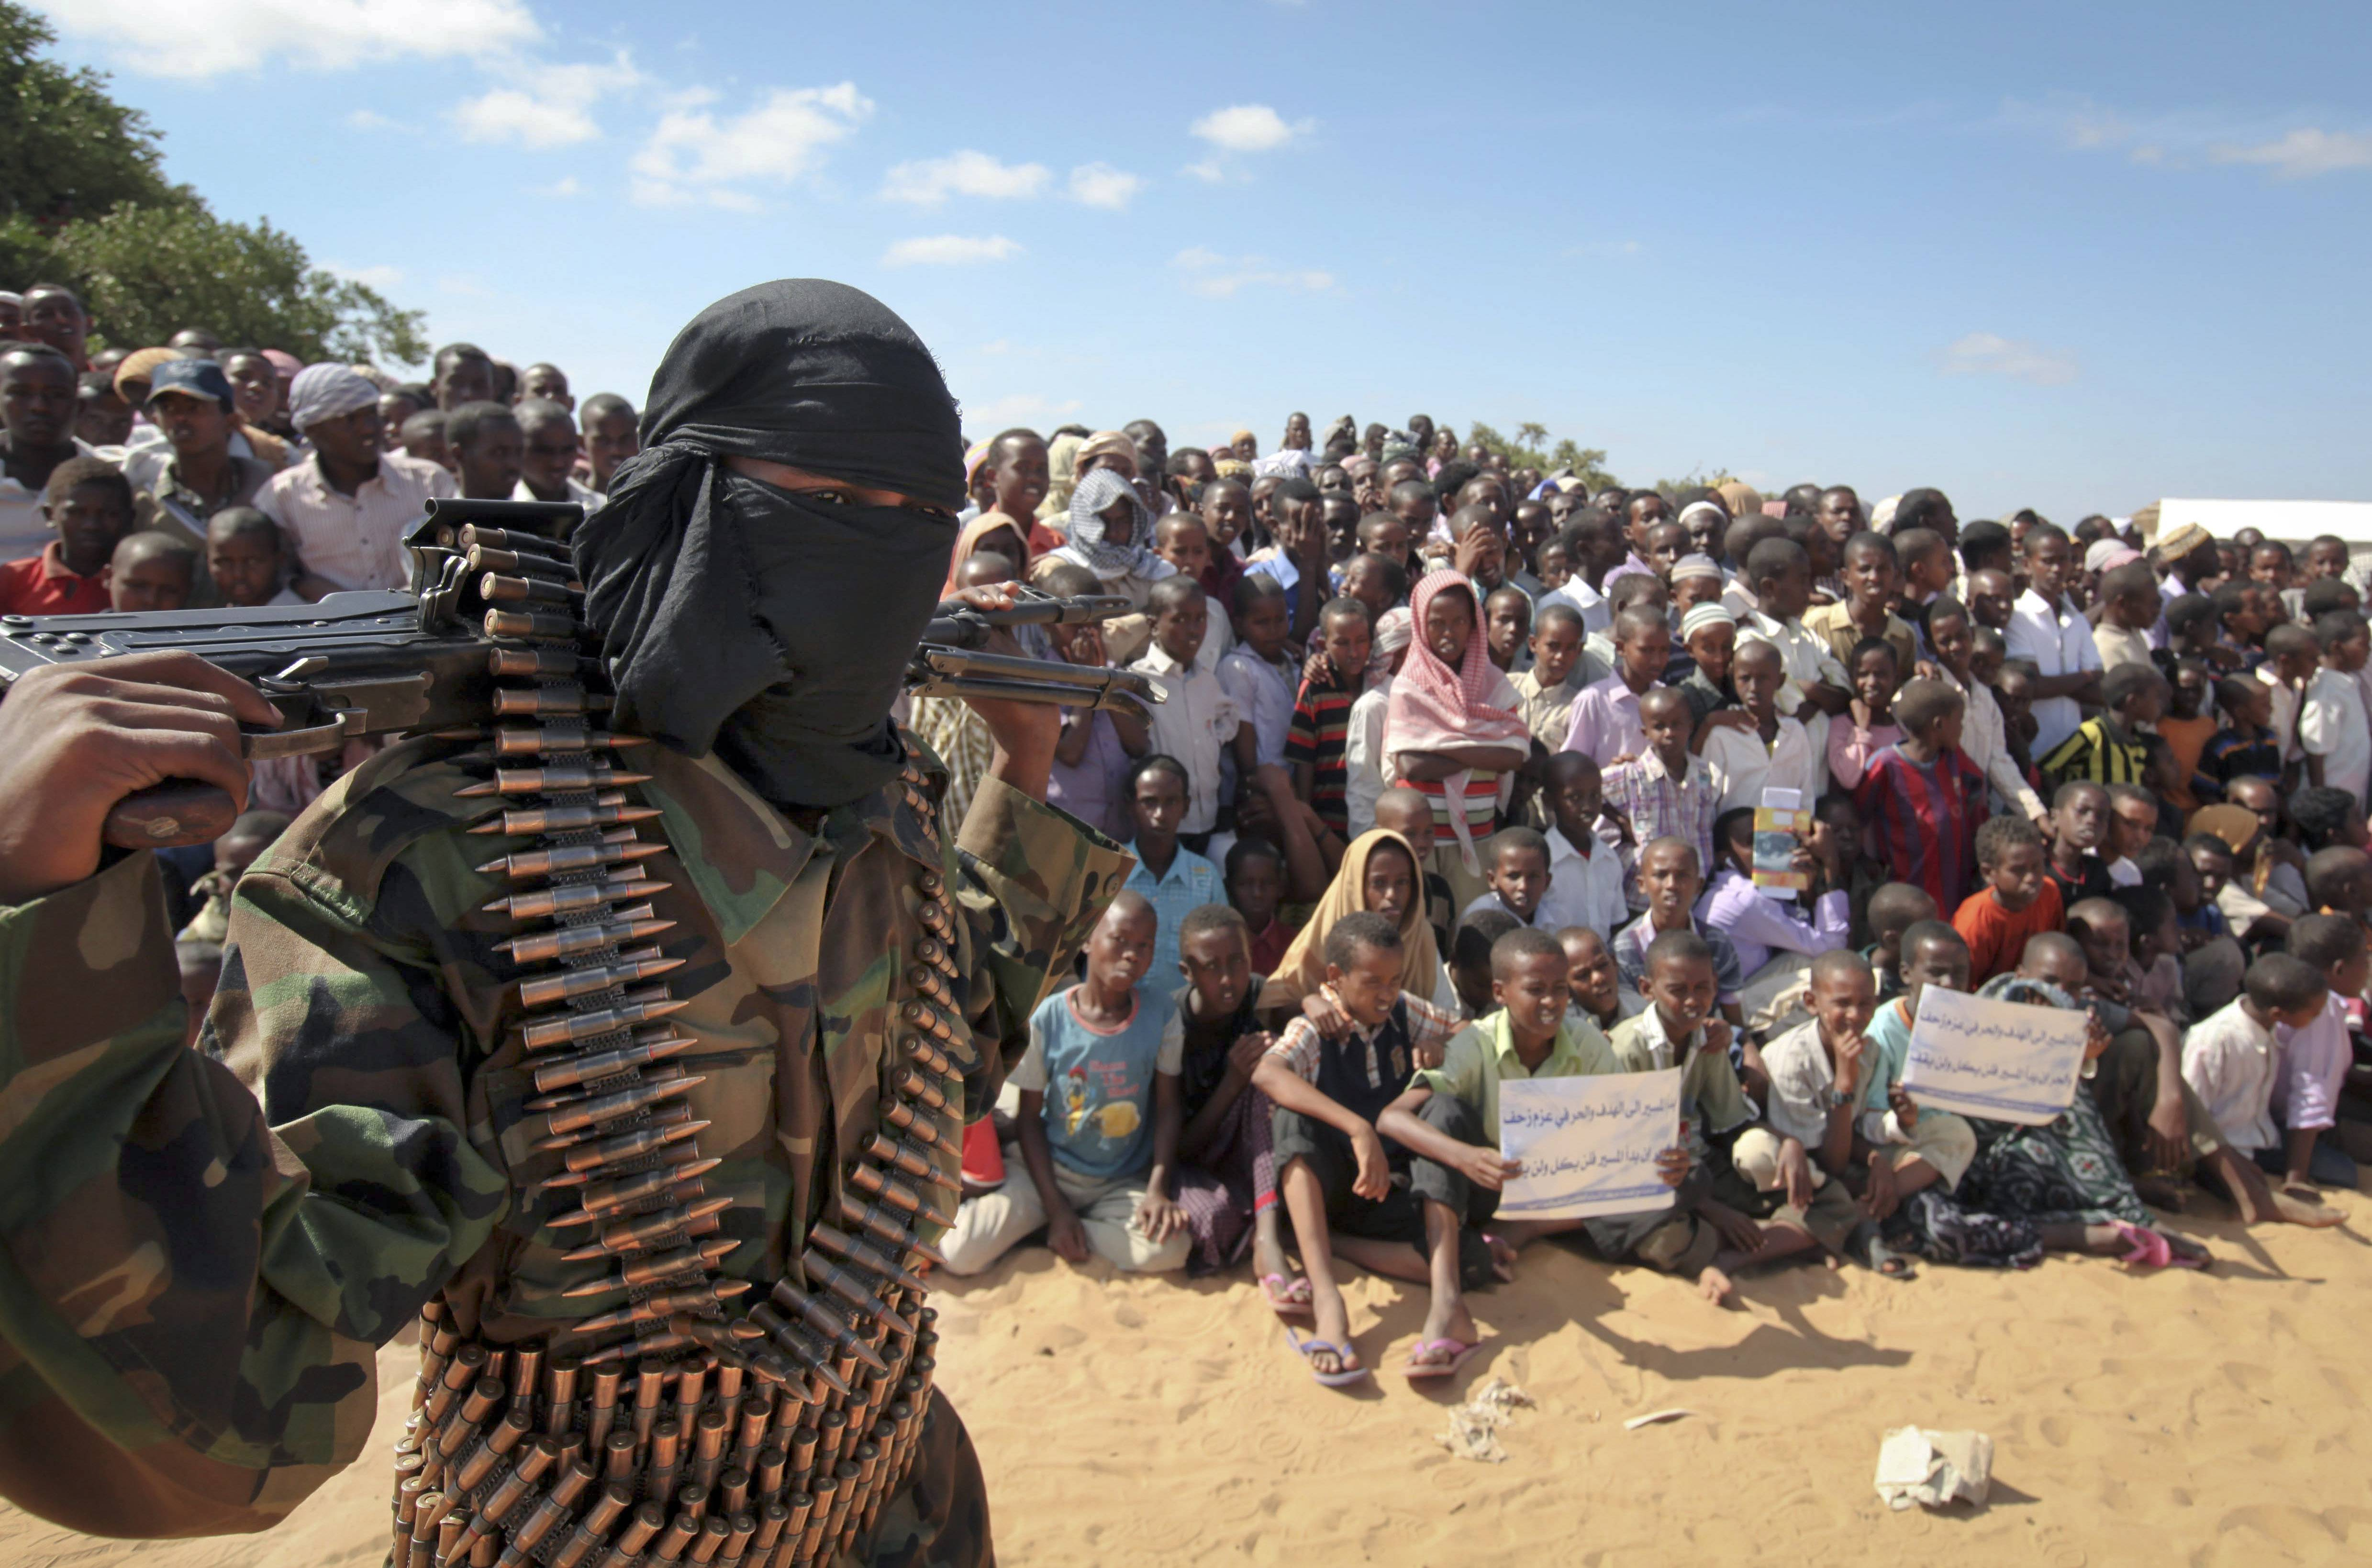 An armed al-Shabab member attends a rally in support of the merger of that group with al-Qaida, on the outskirts of Mogadishu, Somalia, Feb. 13, 2012. U.S. military forces targeted the Islamic extremist al-Shabab network in an operation Monday in Somalia, the Pentagon said.